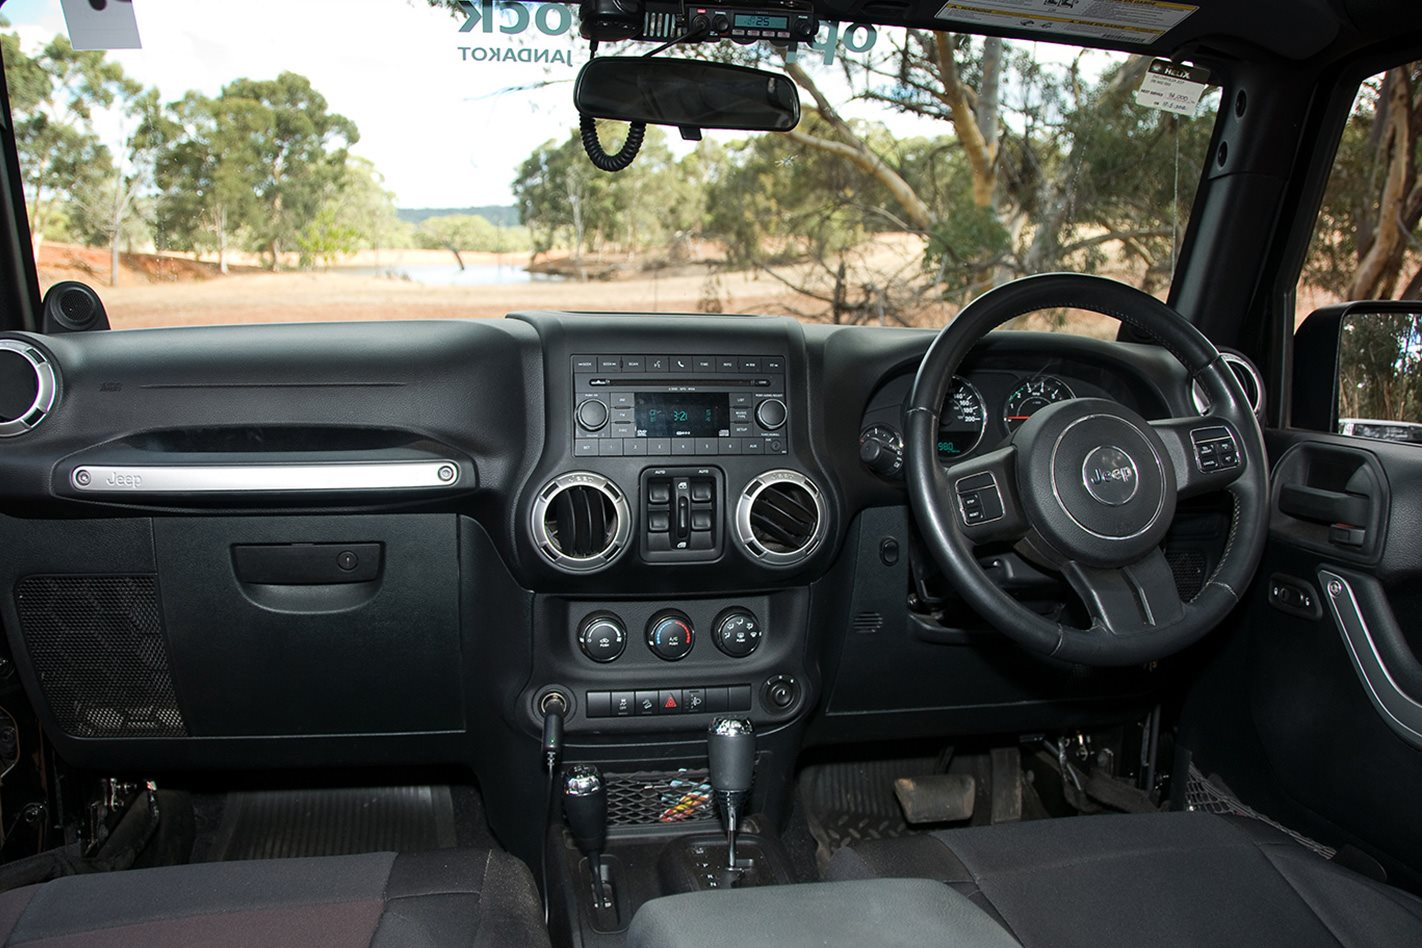 Opposite-Lock-equipped-Jeep-Rubicon-interior.jpg